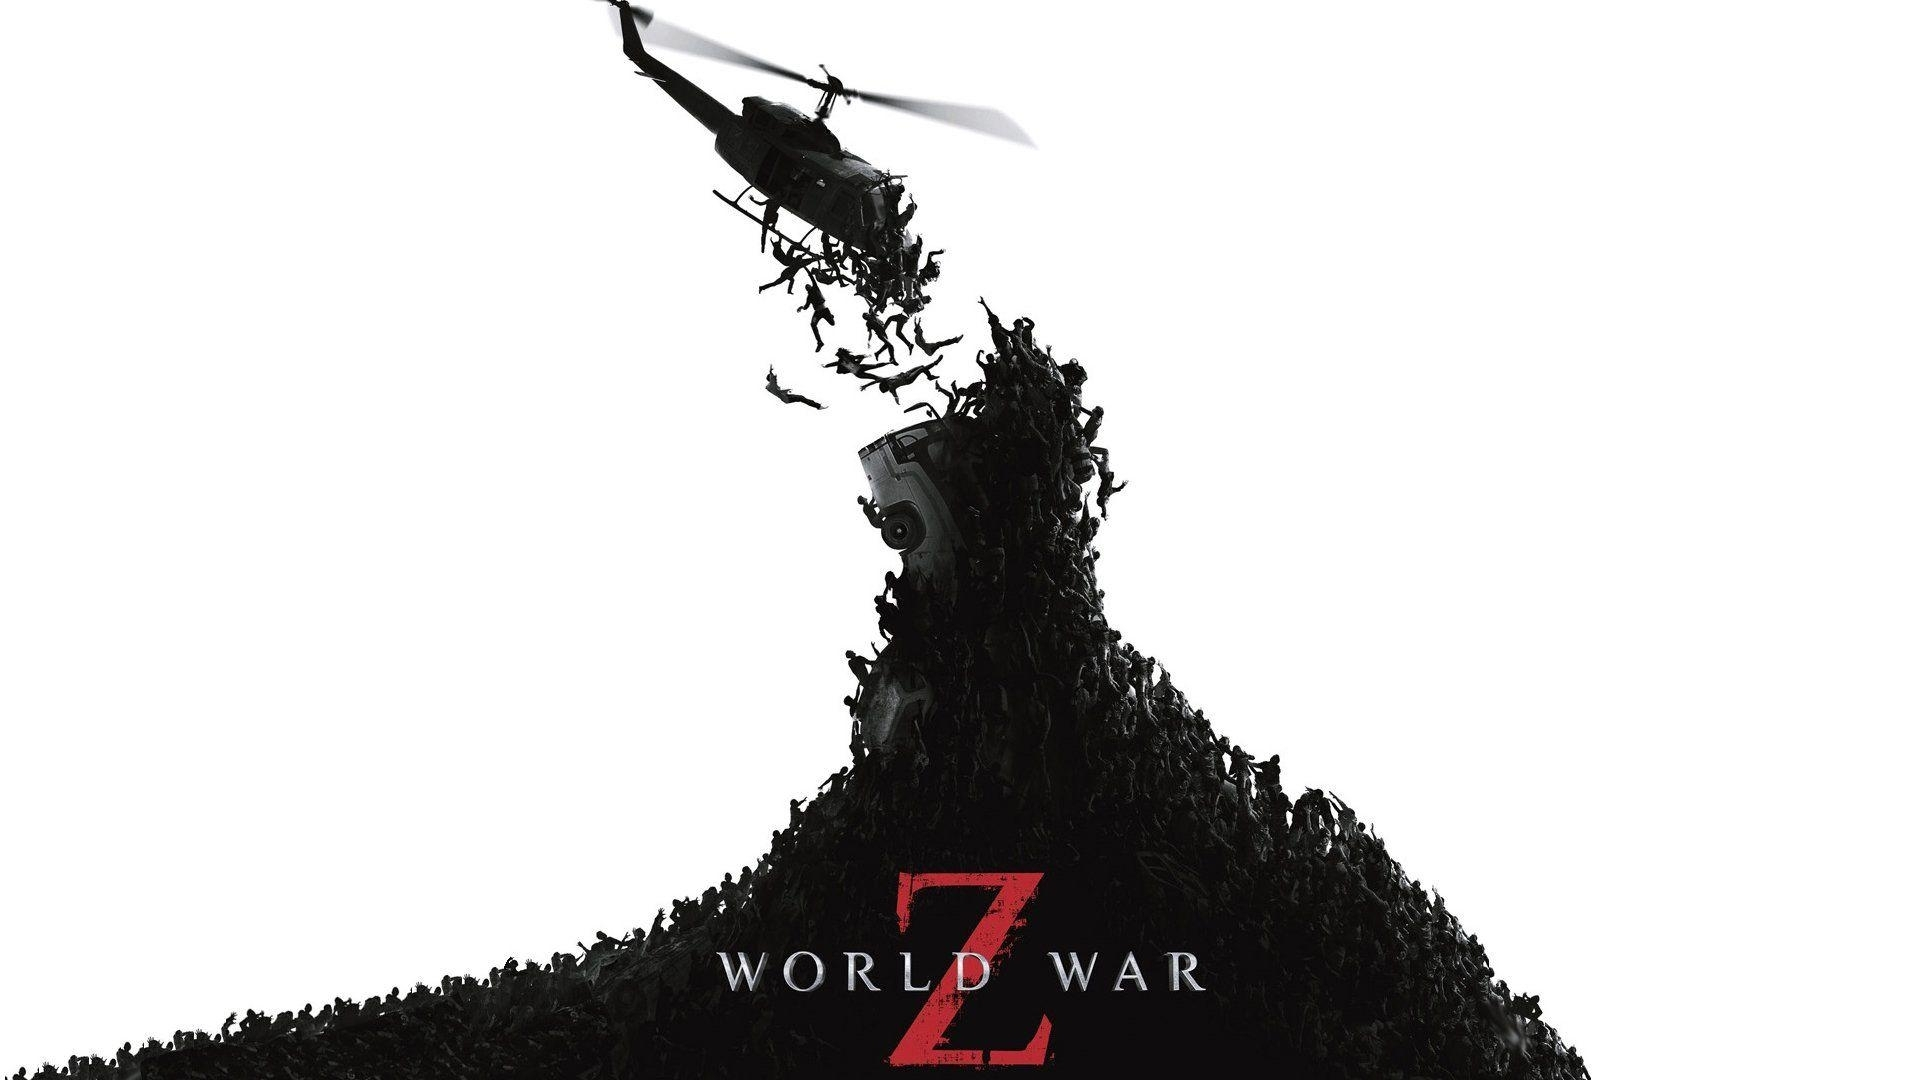 world war z wallpapers - wallpaper cave